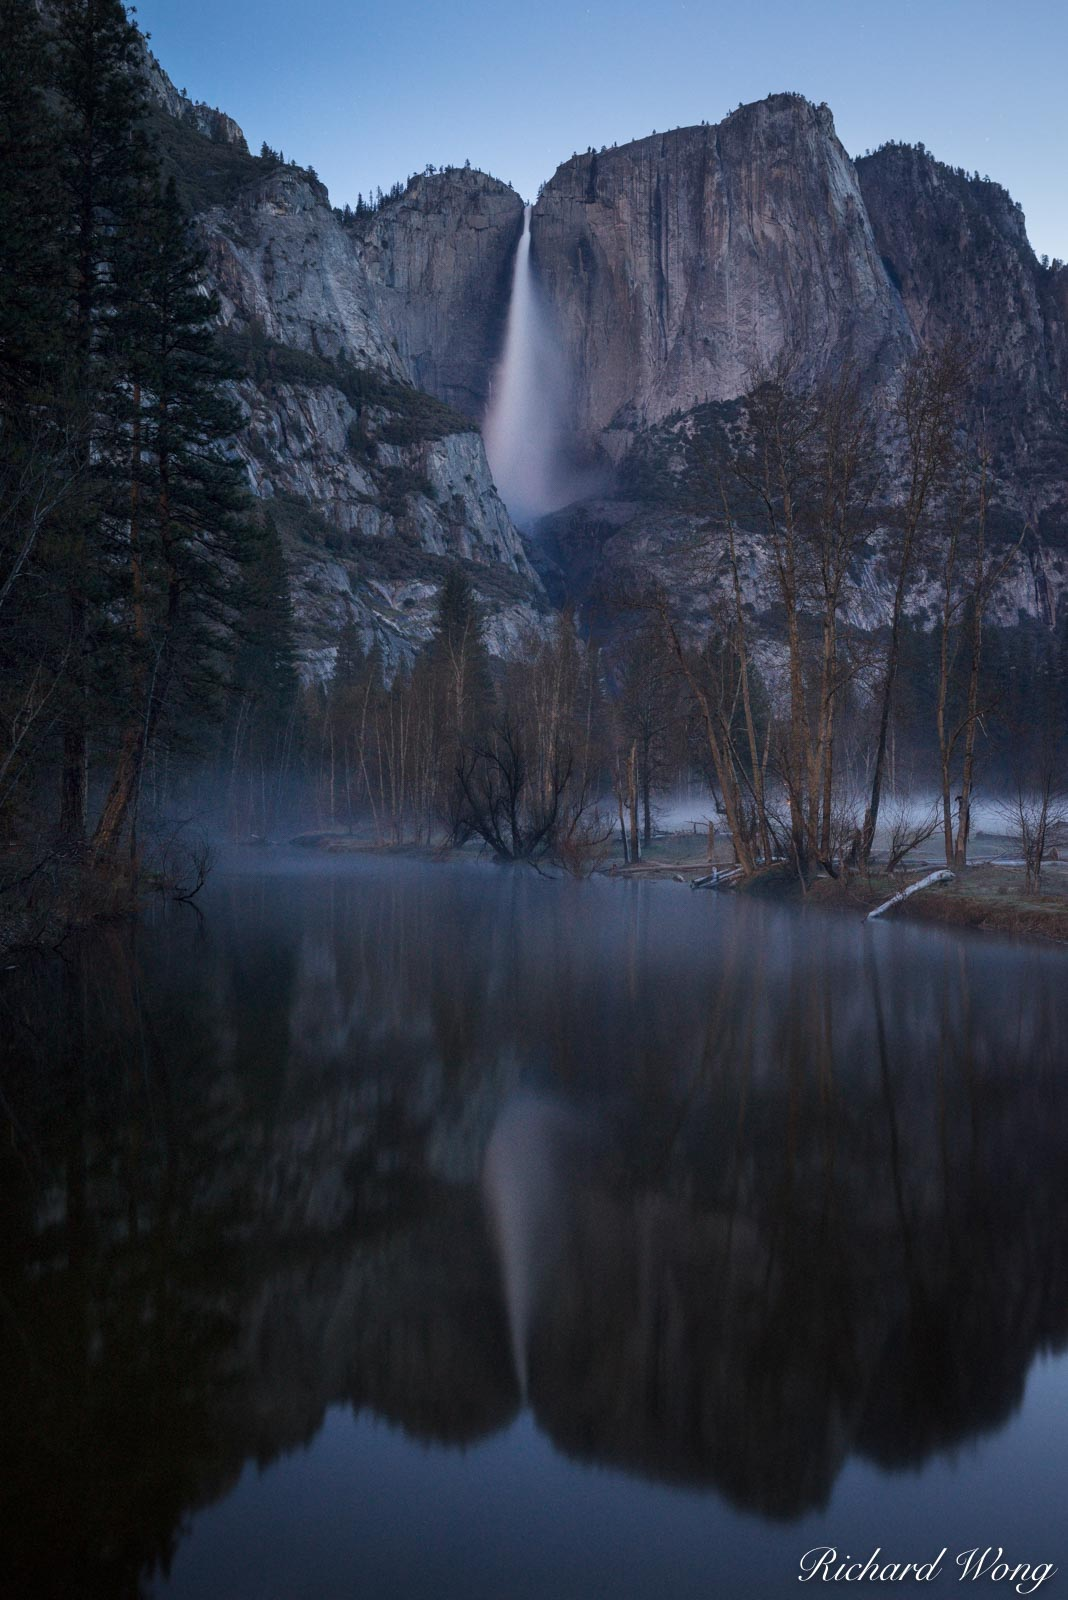 Yosemite Falls Spring Morning Reflection in Merced River, Yosemite National Park, California, photo, photo